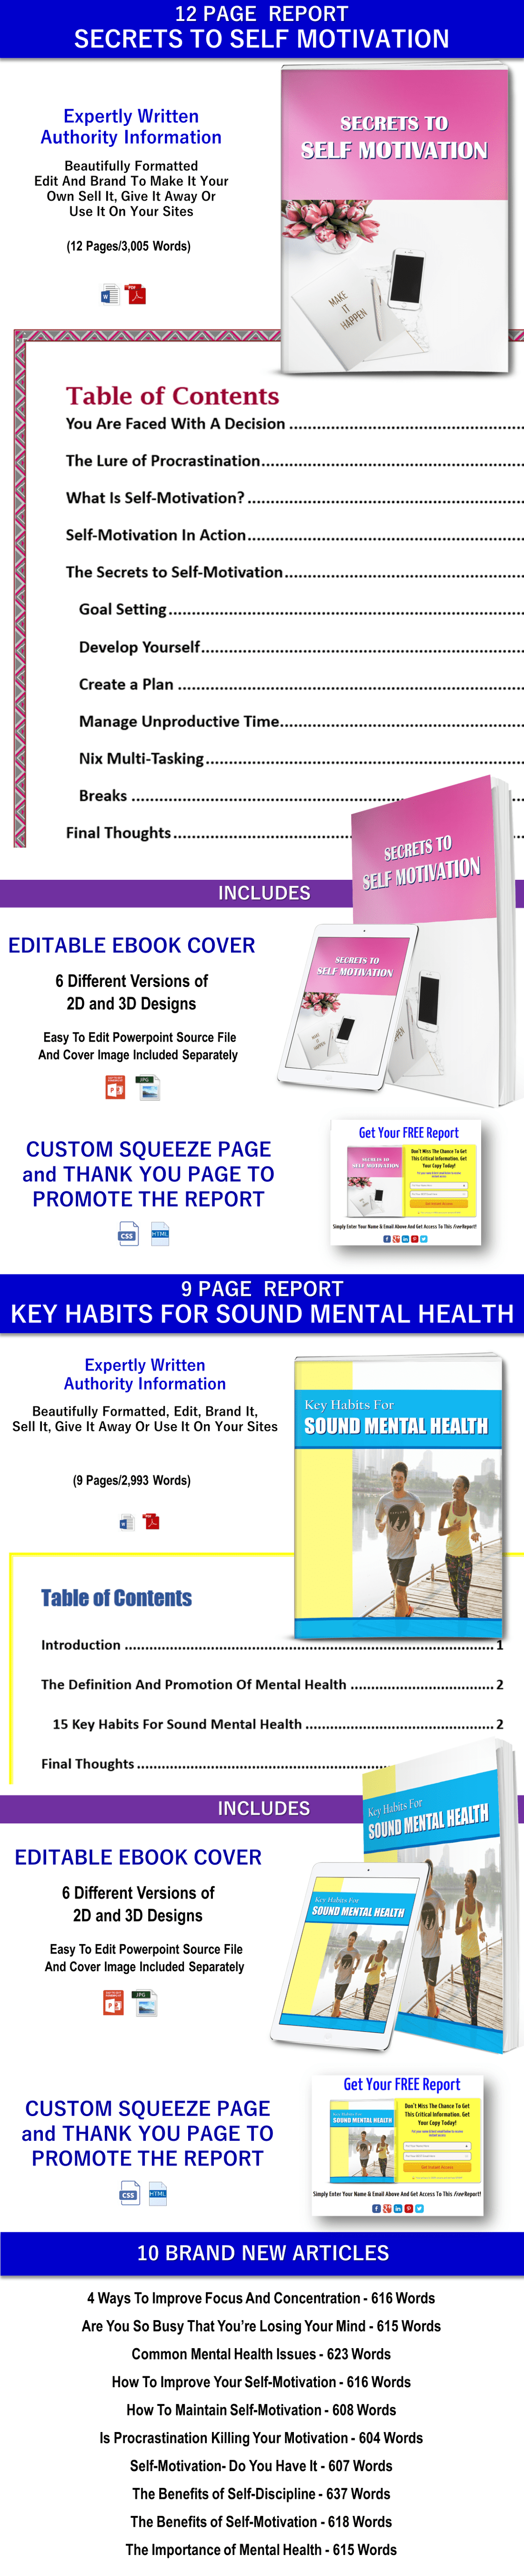 Motivation and Mental Health Habits PLR